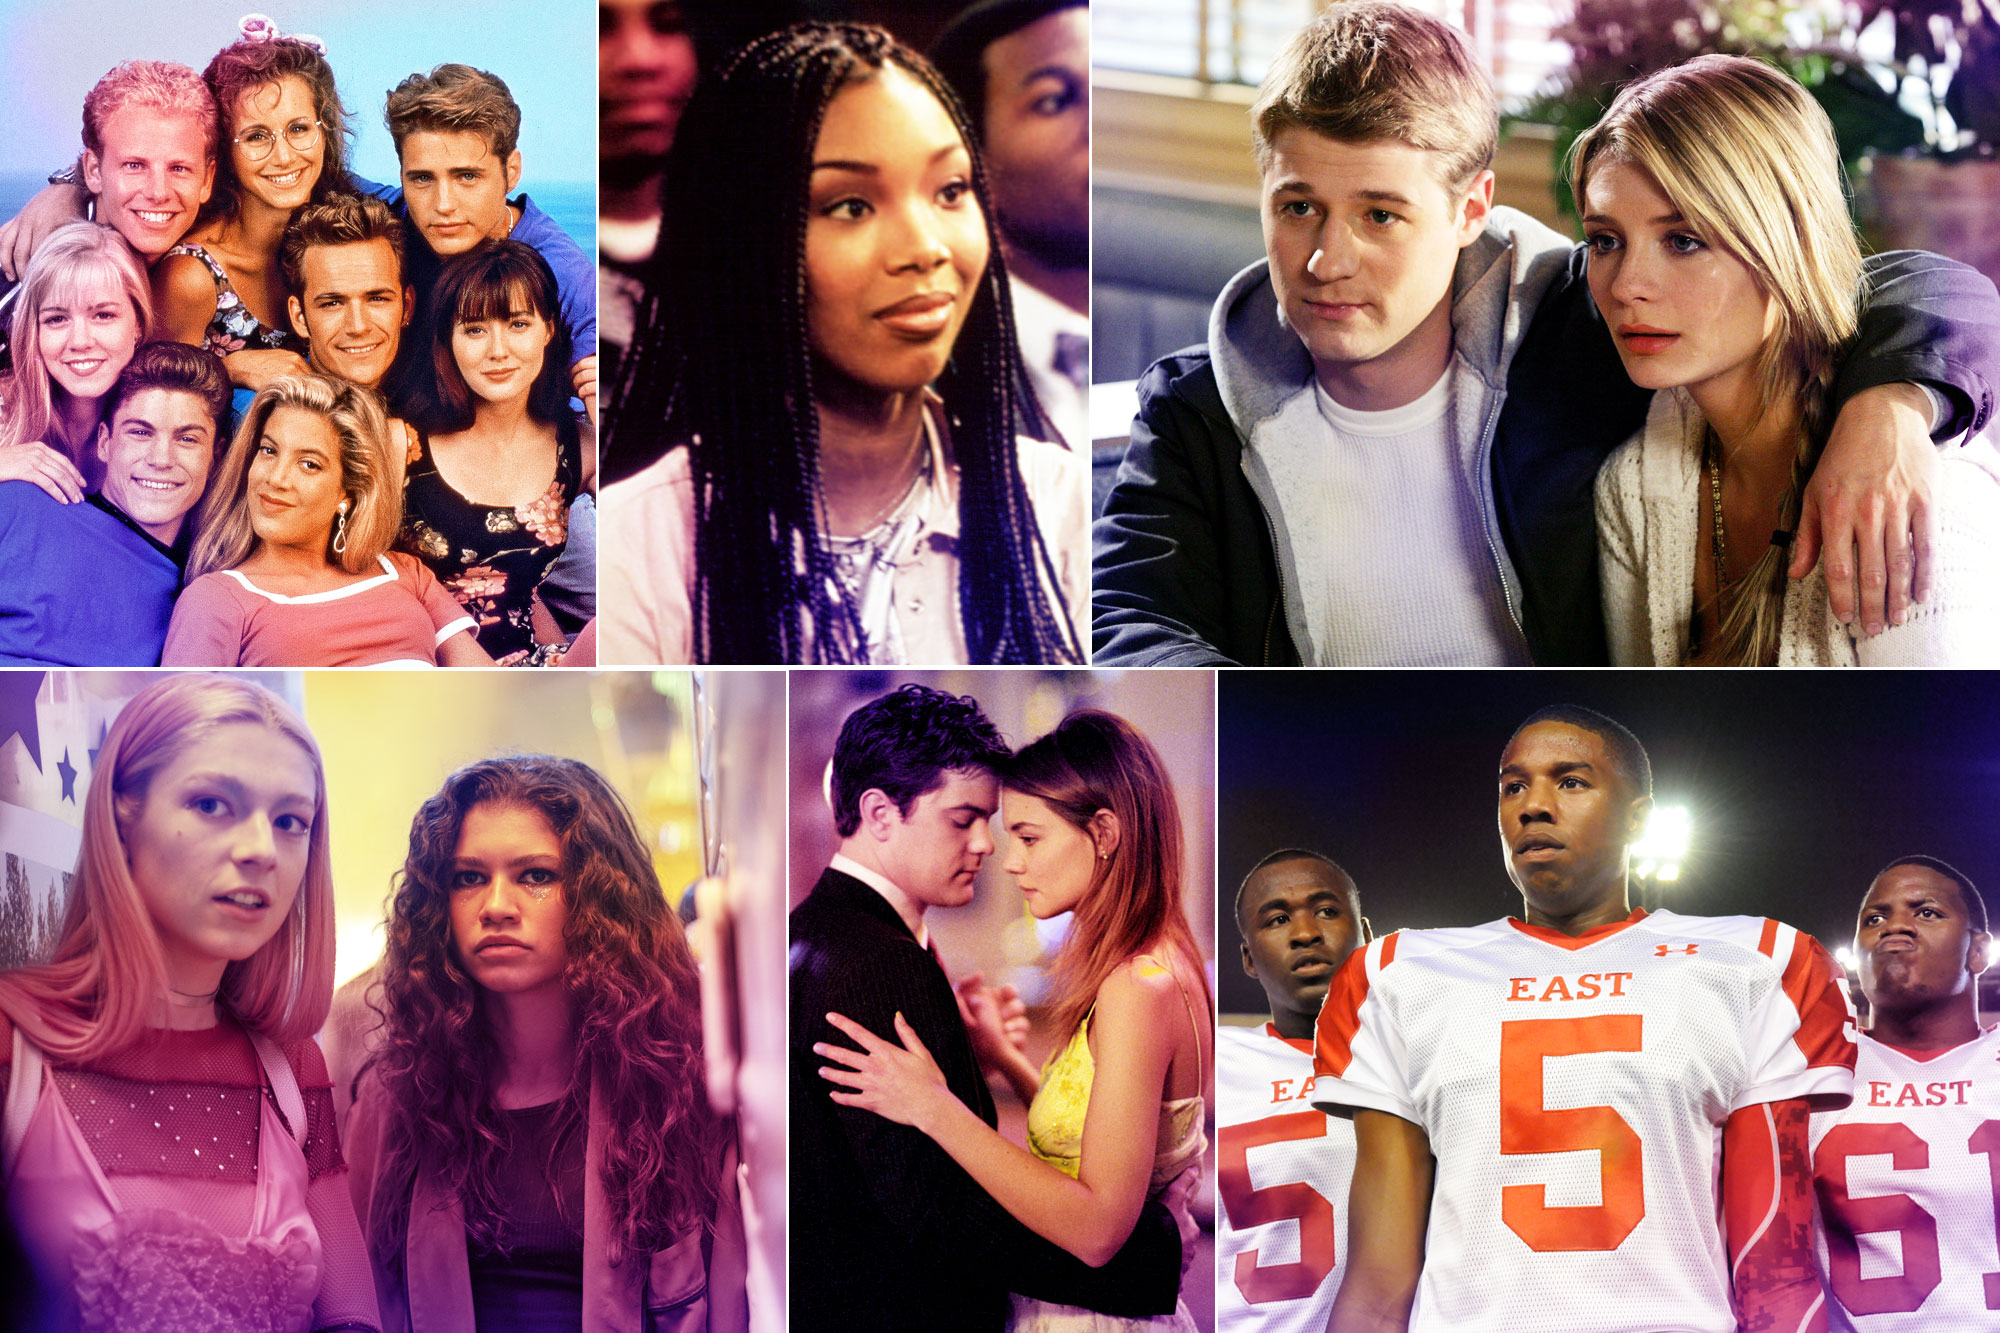 Appeal of Teen TV - Beverly Hills 90210; Moesha; The OC; Euphoria; Dawson's Creek; Friday Night Lights